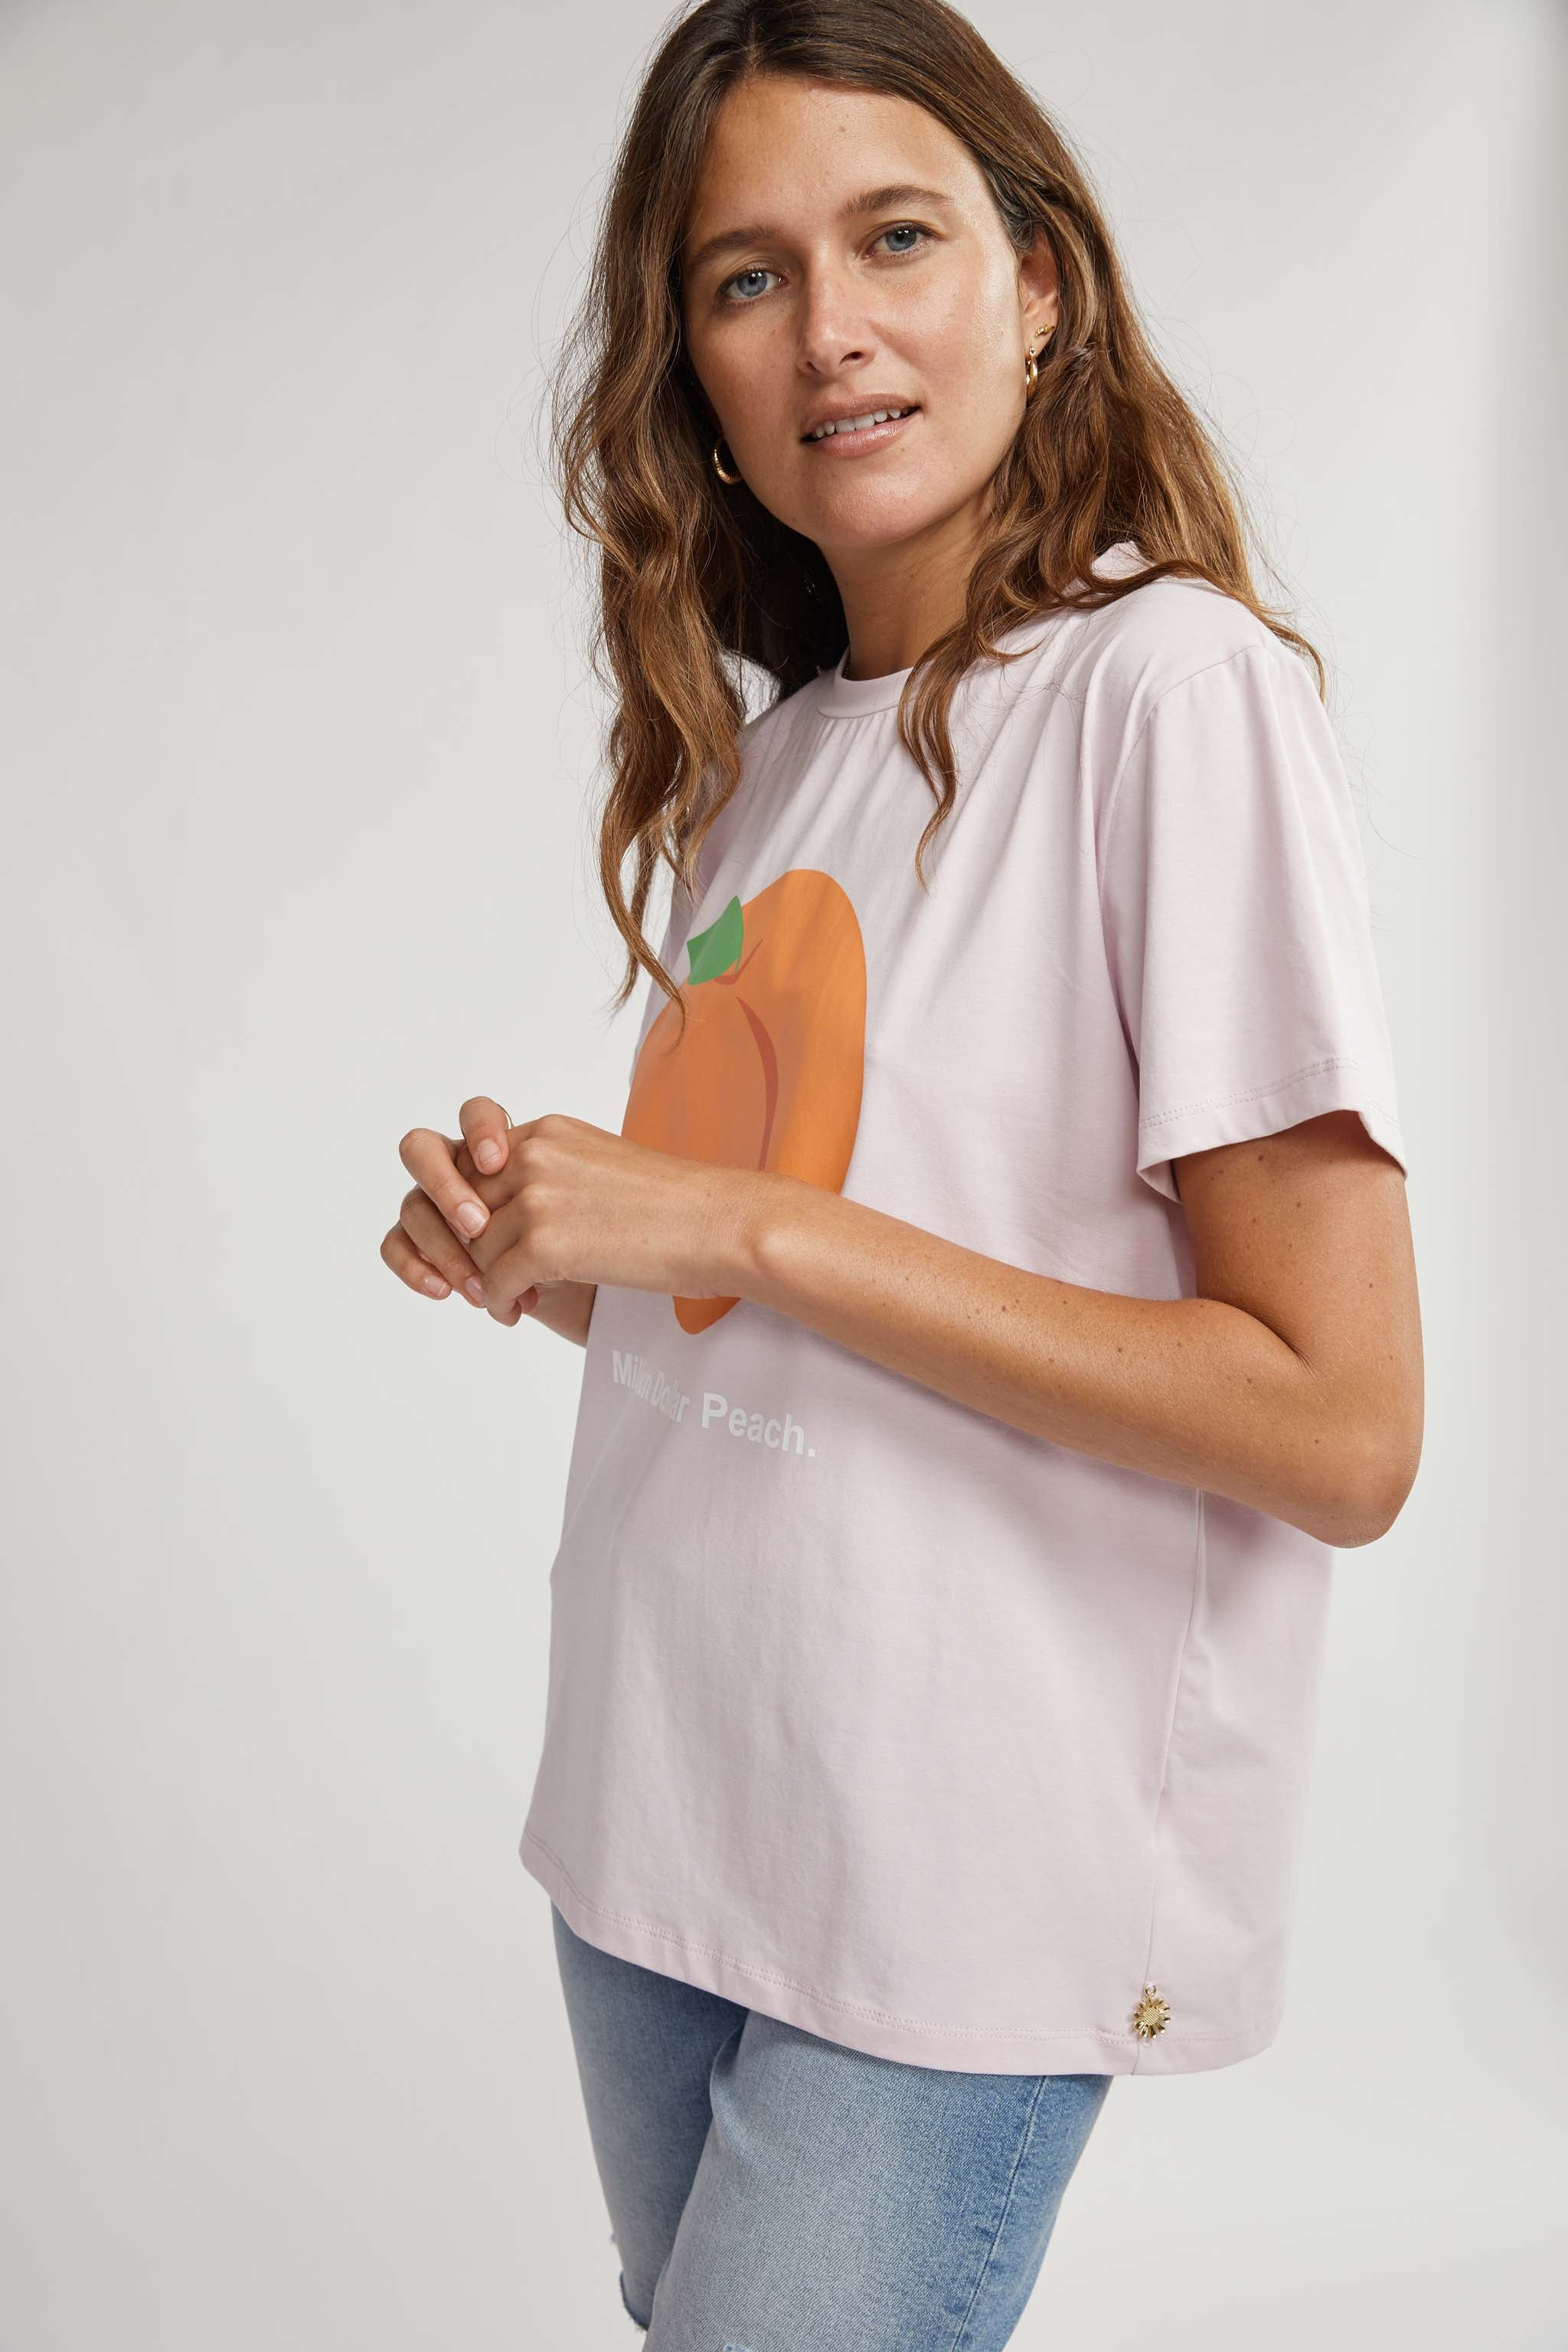 MILLION DOLLAR PEACH T-SHIRT